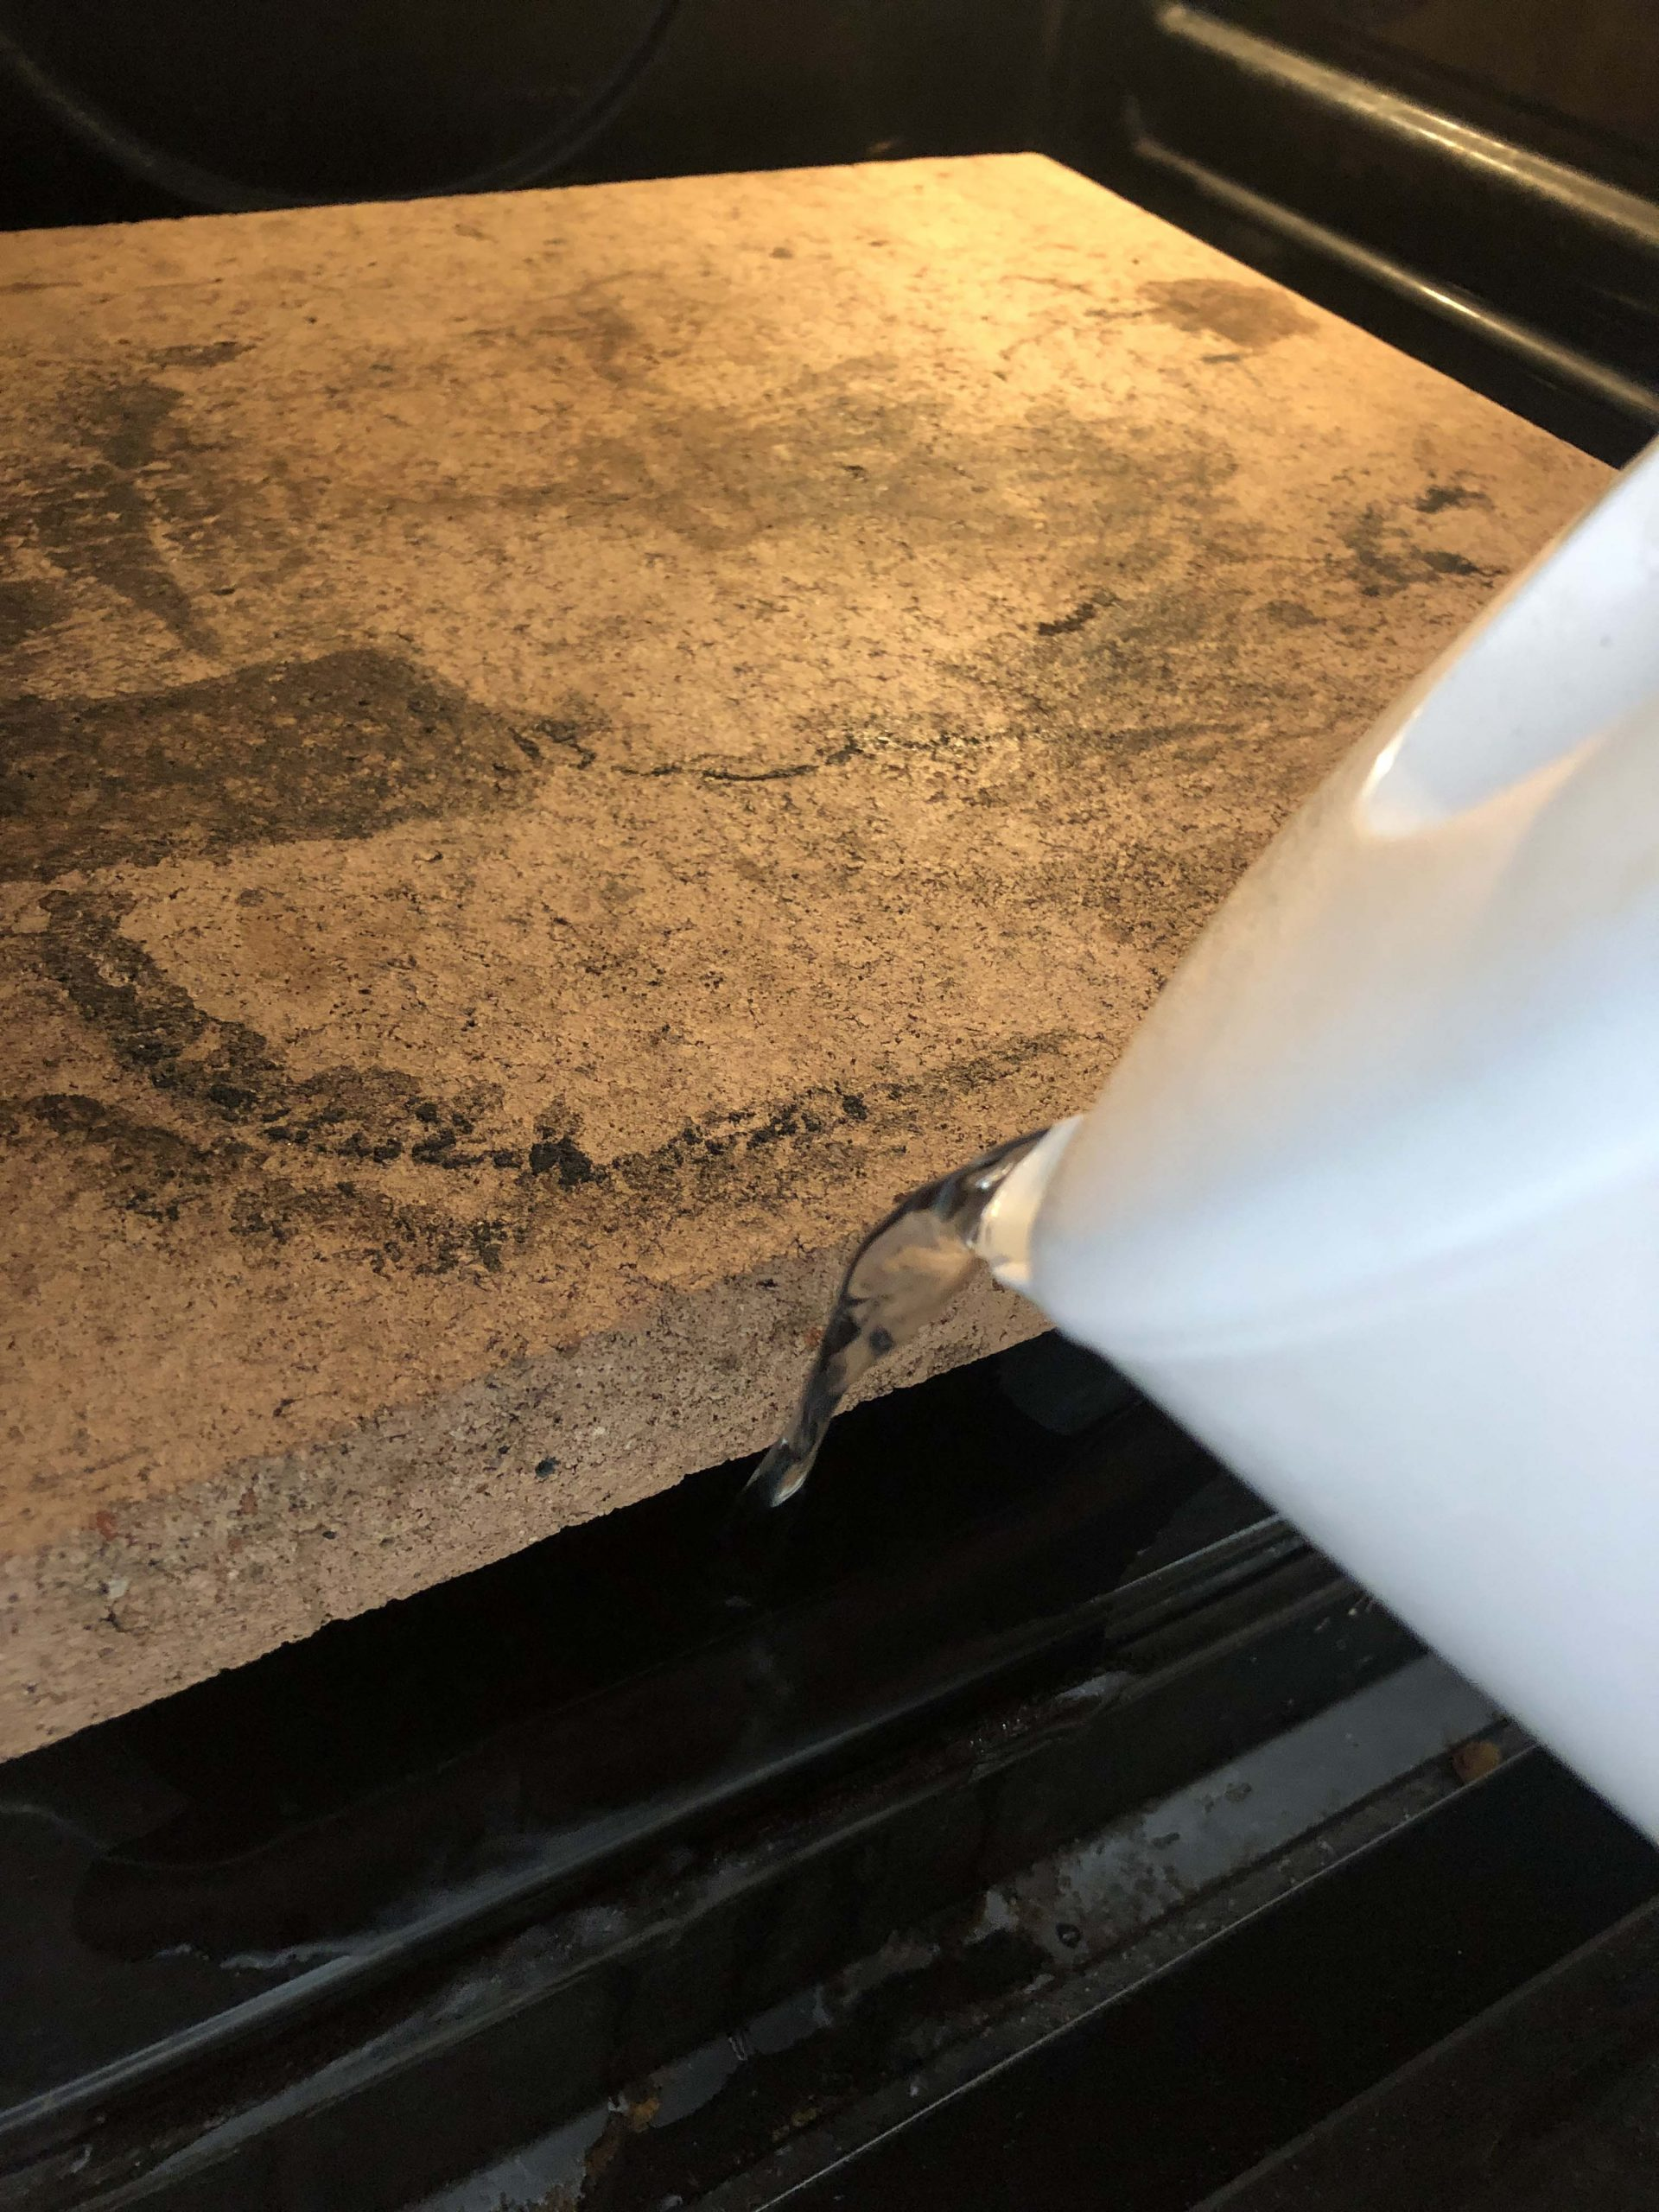 add a cup of water to a hot tray in the oven